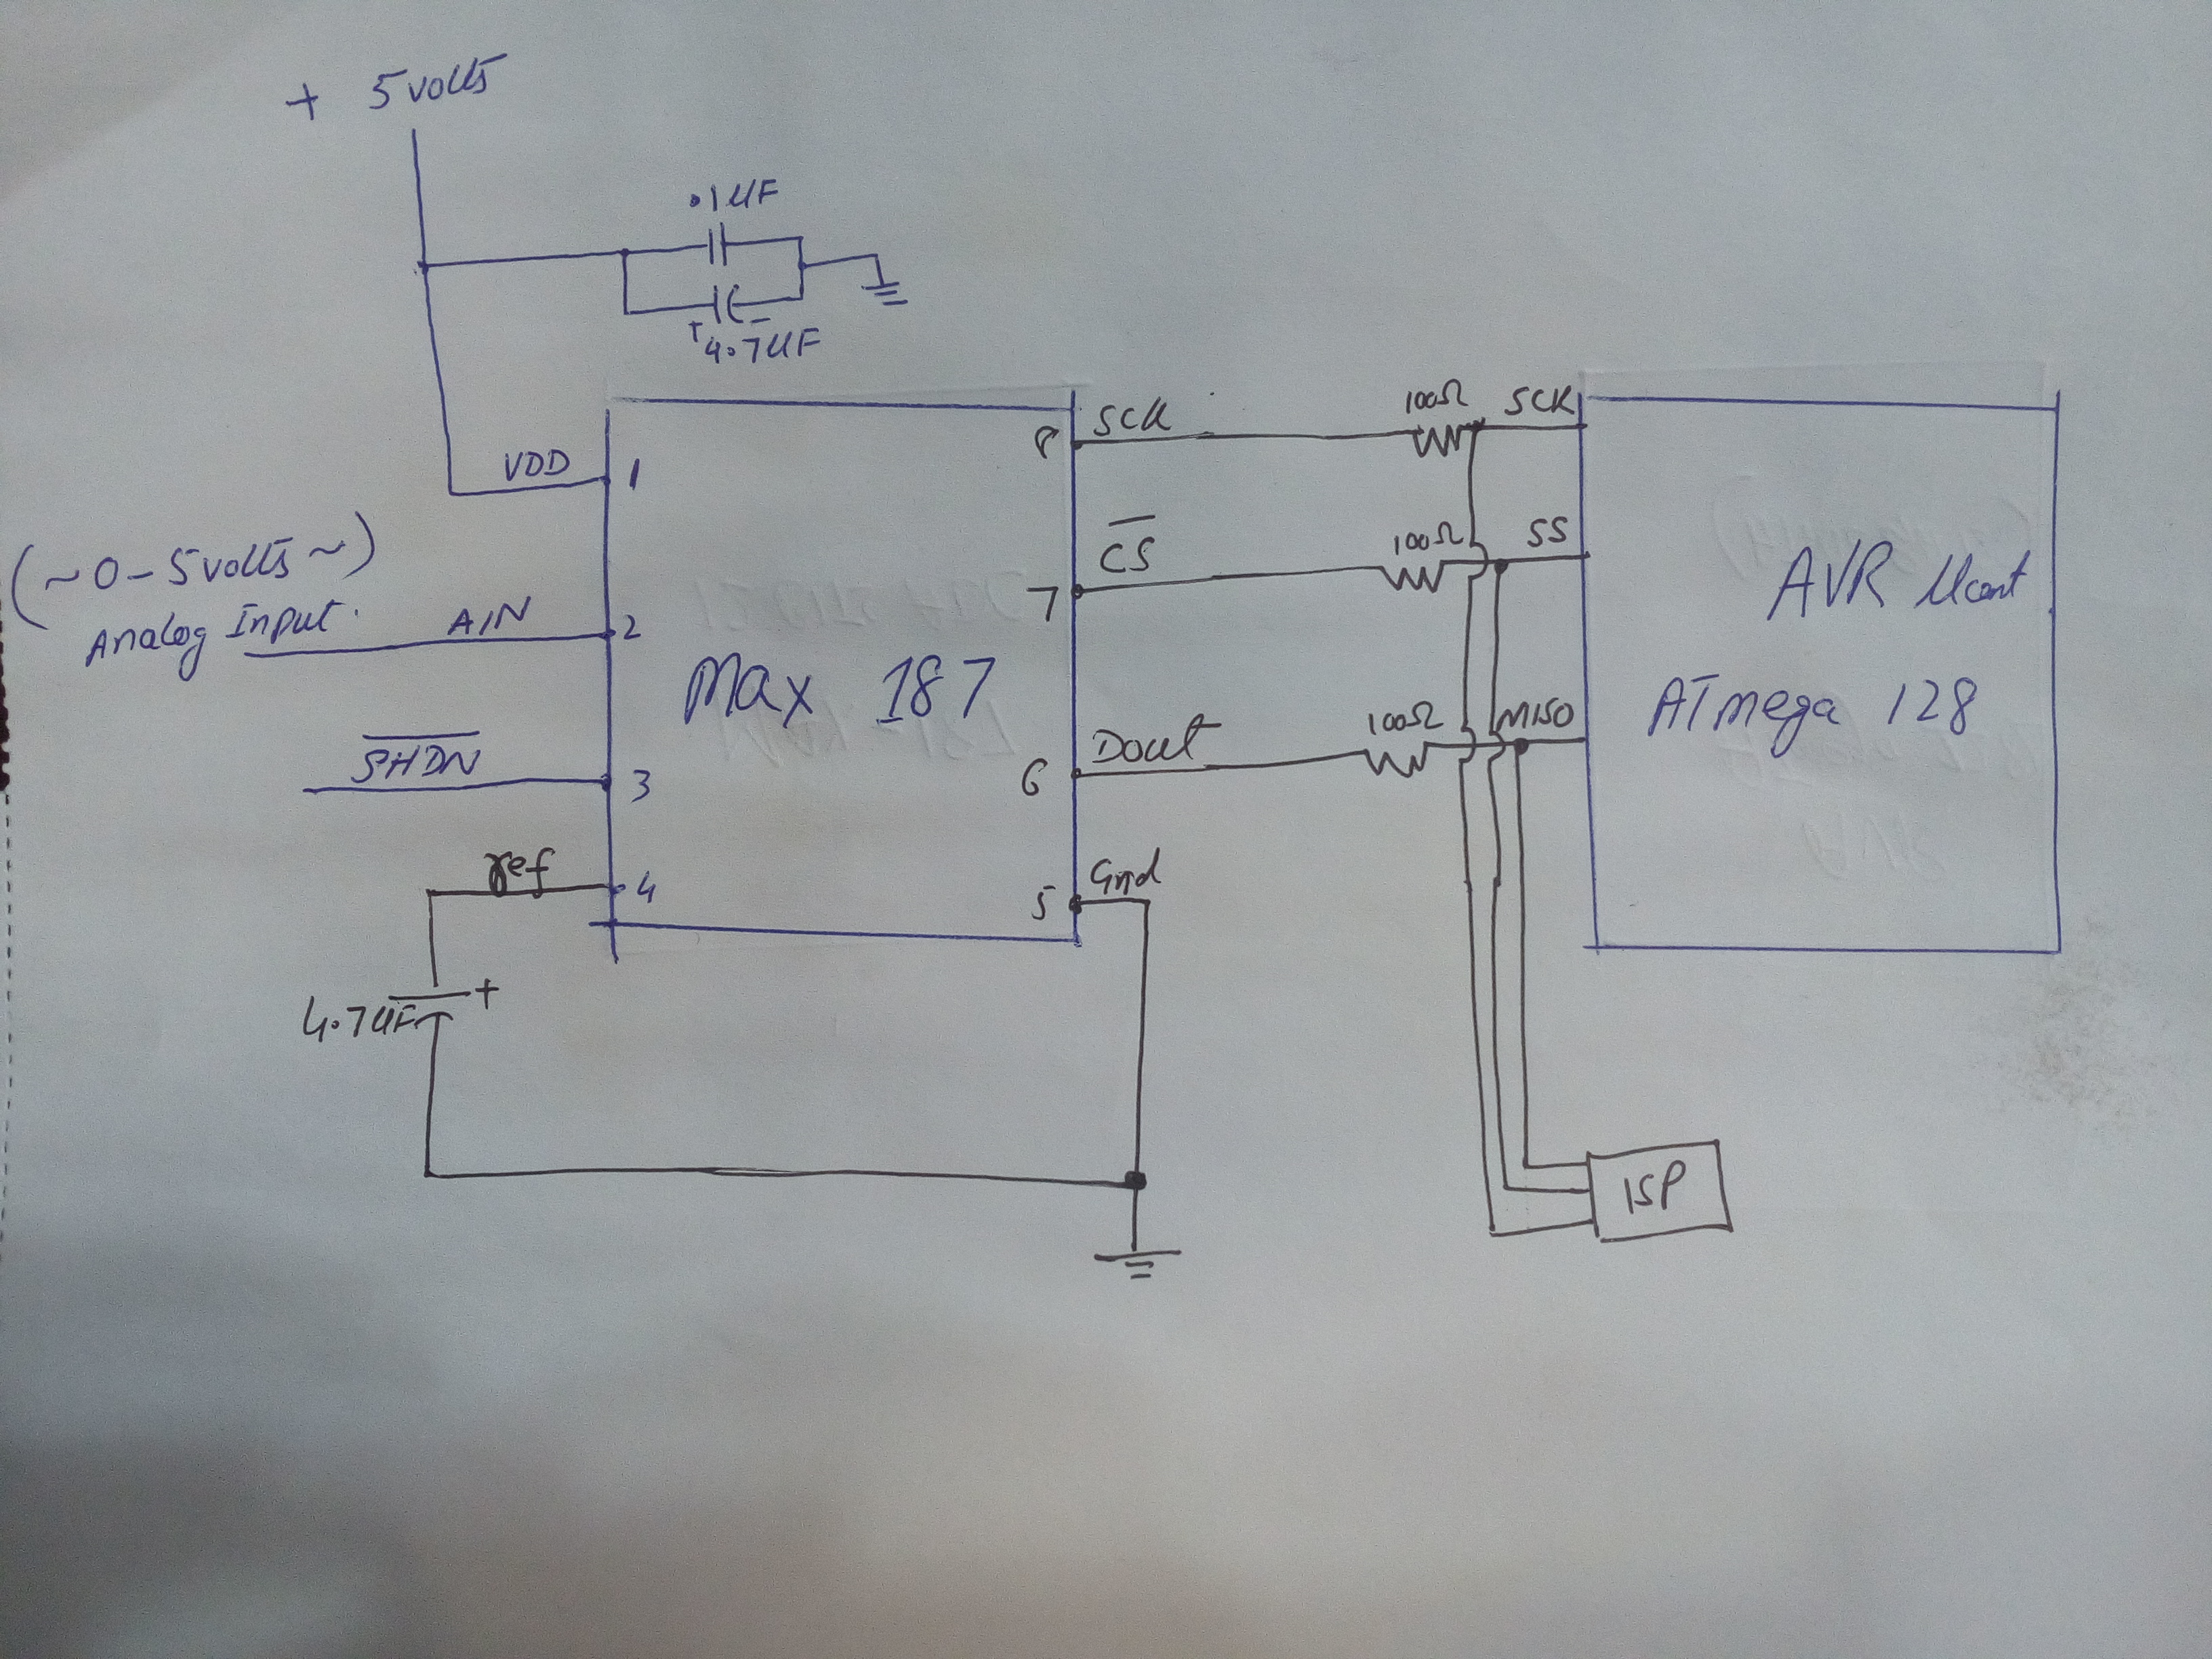 Atmega 128 Interfacing With Max187 12 Bits Adc On Spi Interface The Hardware Is Implemented By Using A Avr Atmega88 Microcontroller Img 20170211 174531